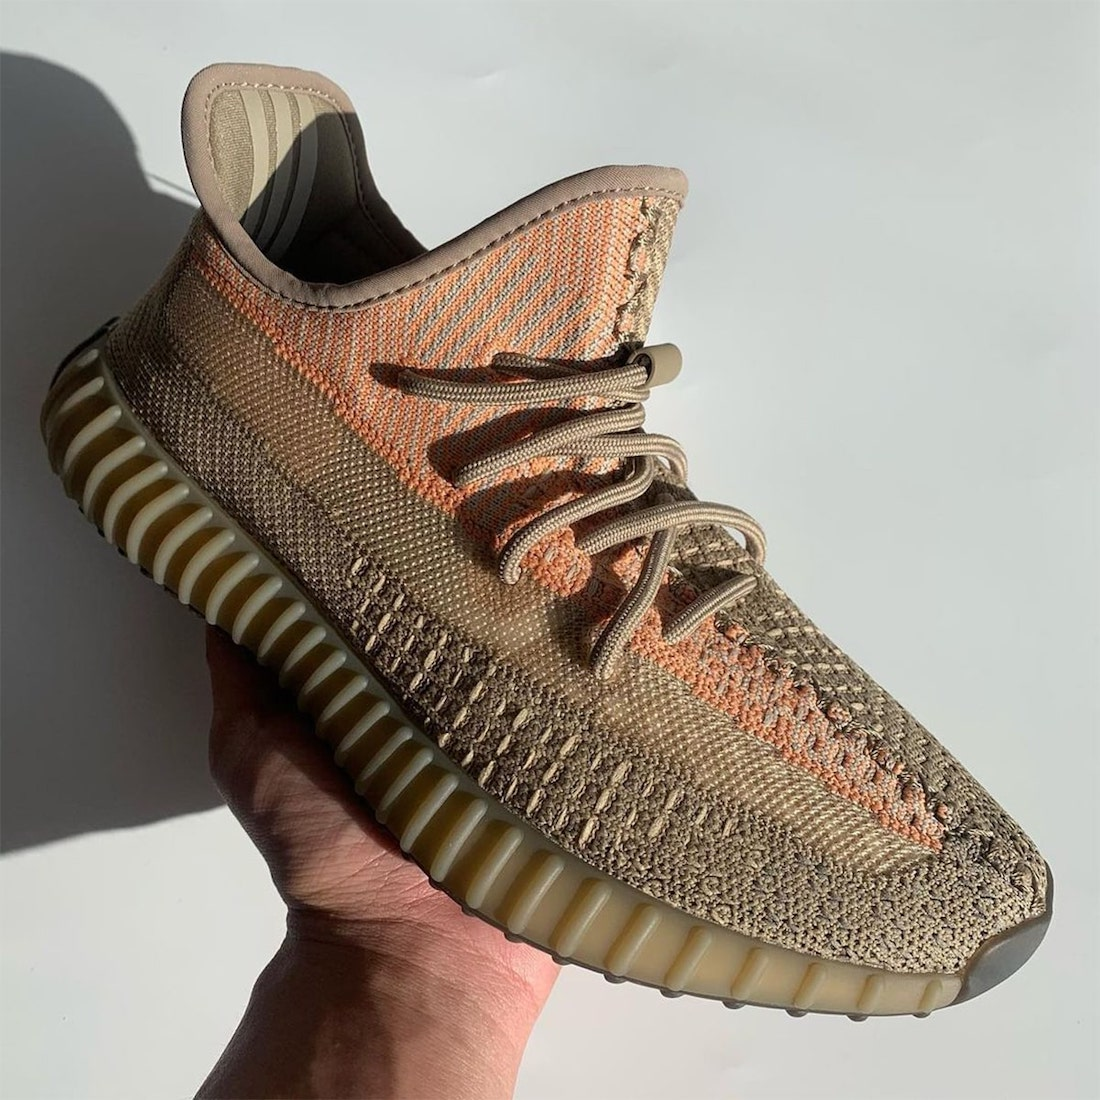 adidas Yeezy Boost 350 V2 Sand Taupe Eliada Release Date